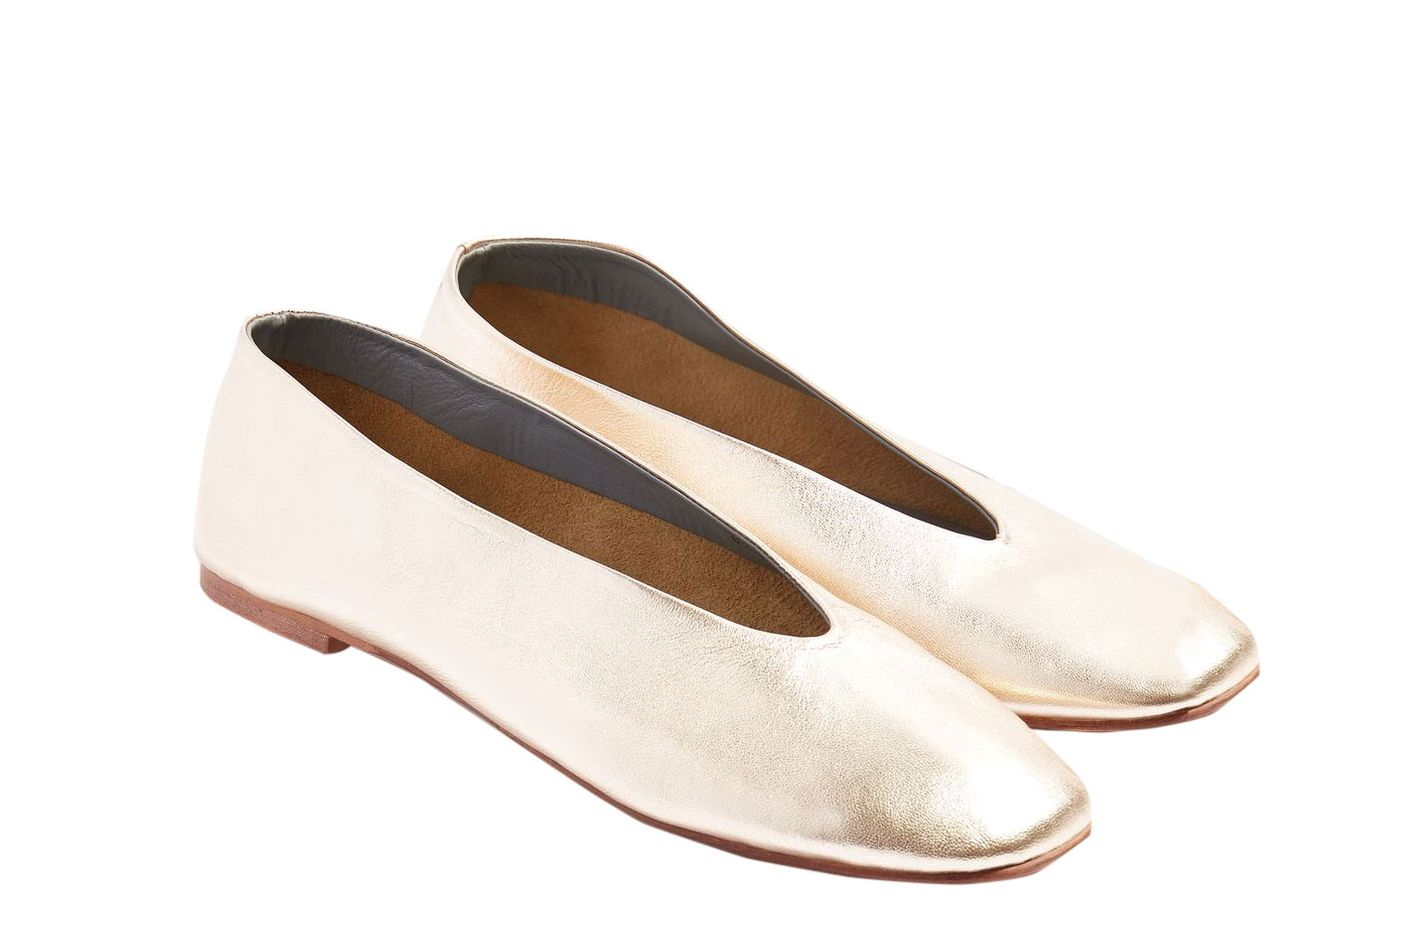 Topshop Kick Soft Leather Ballet Flats